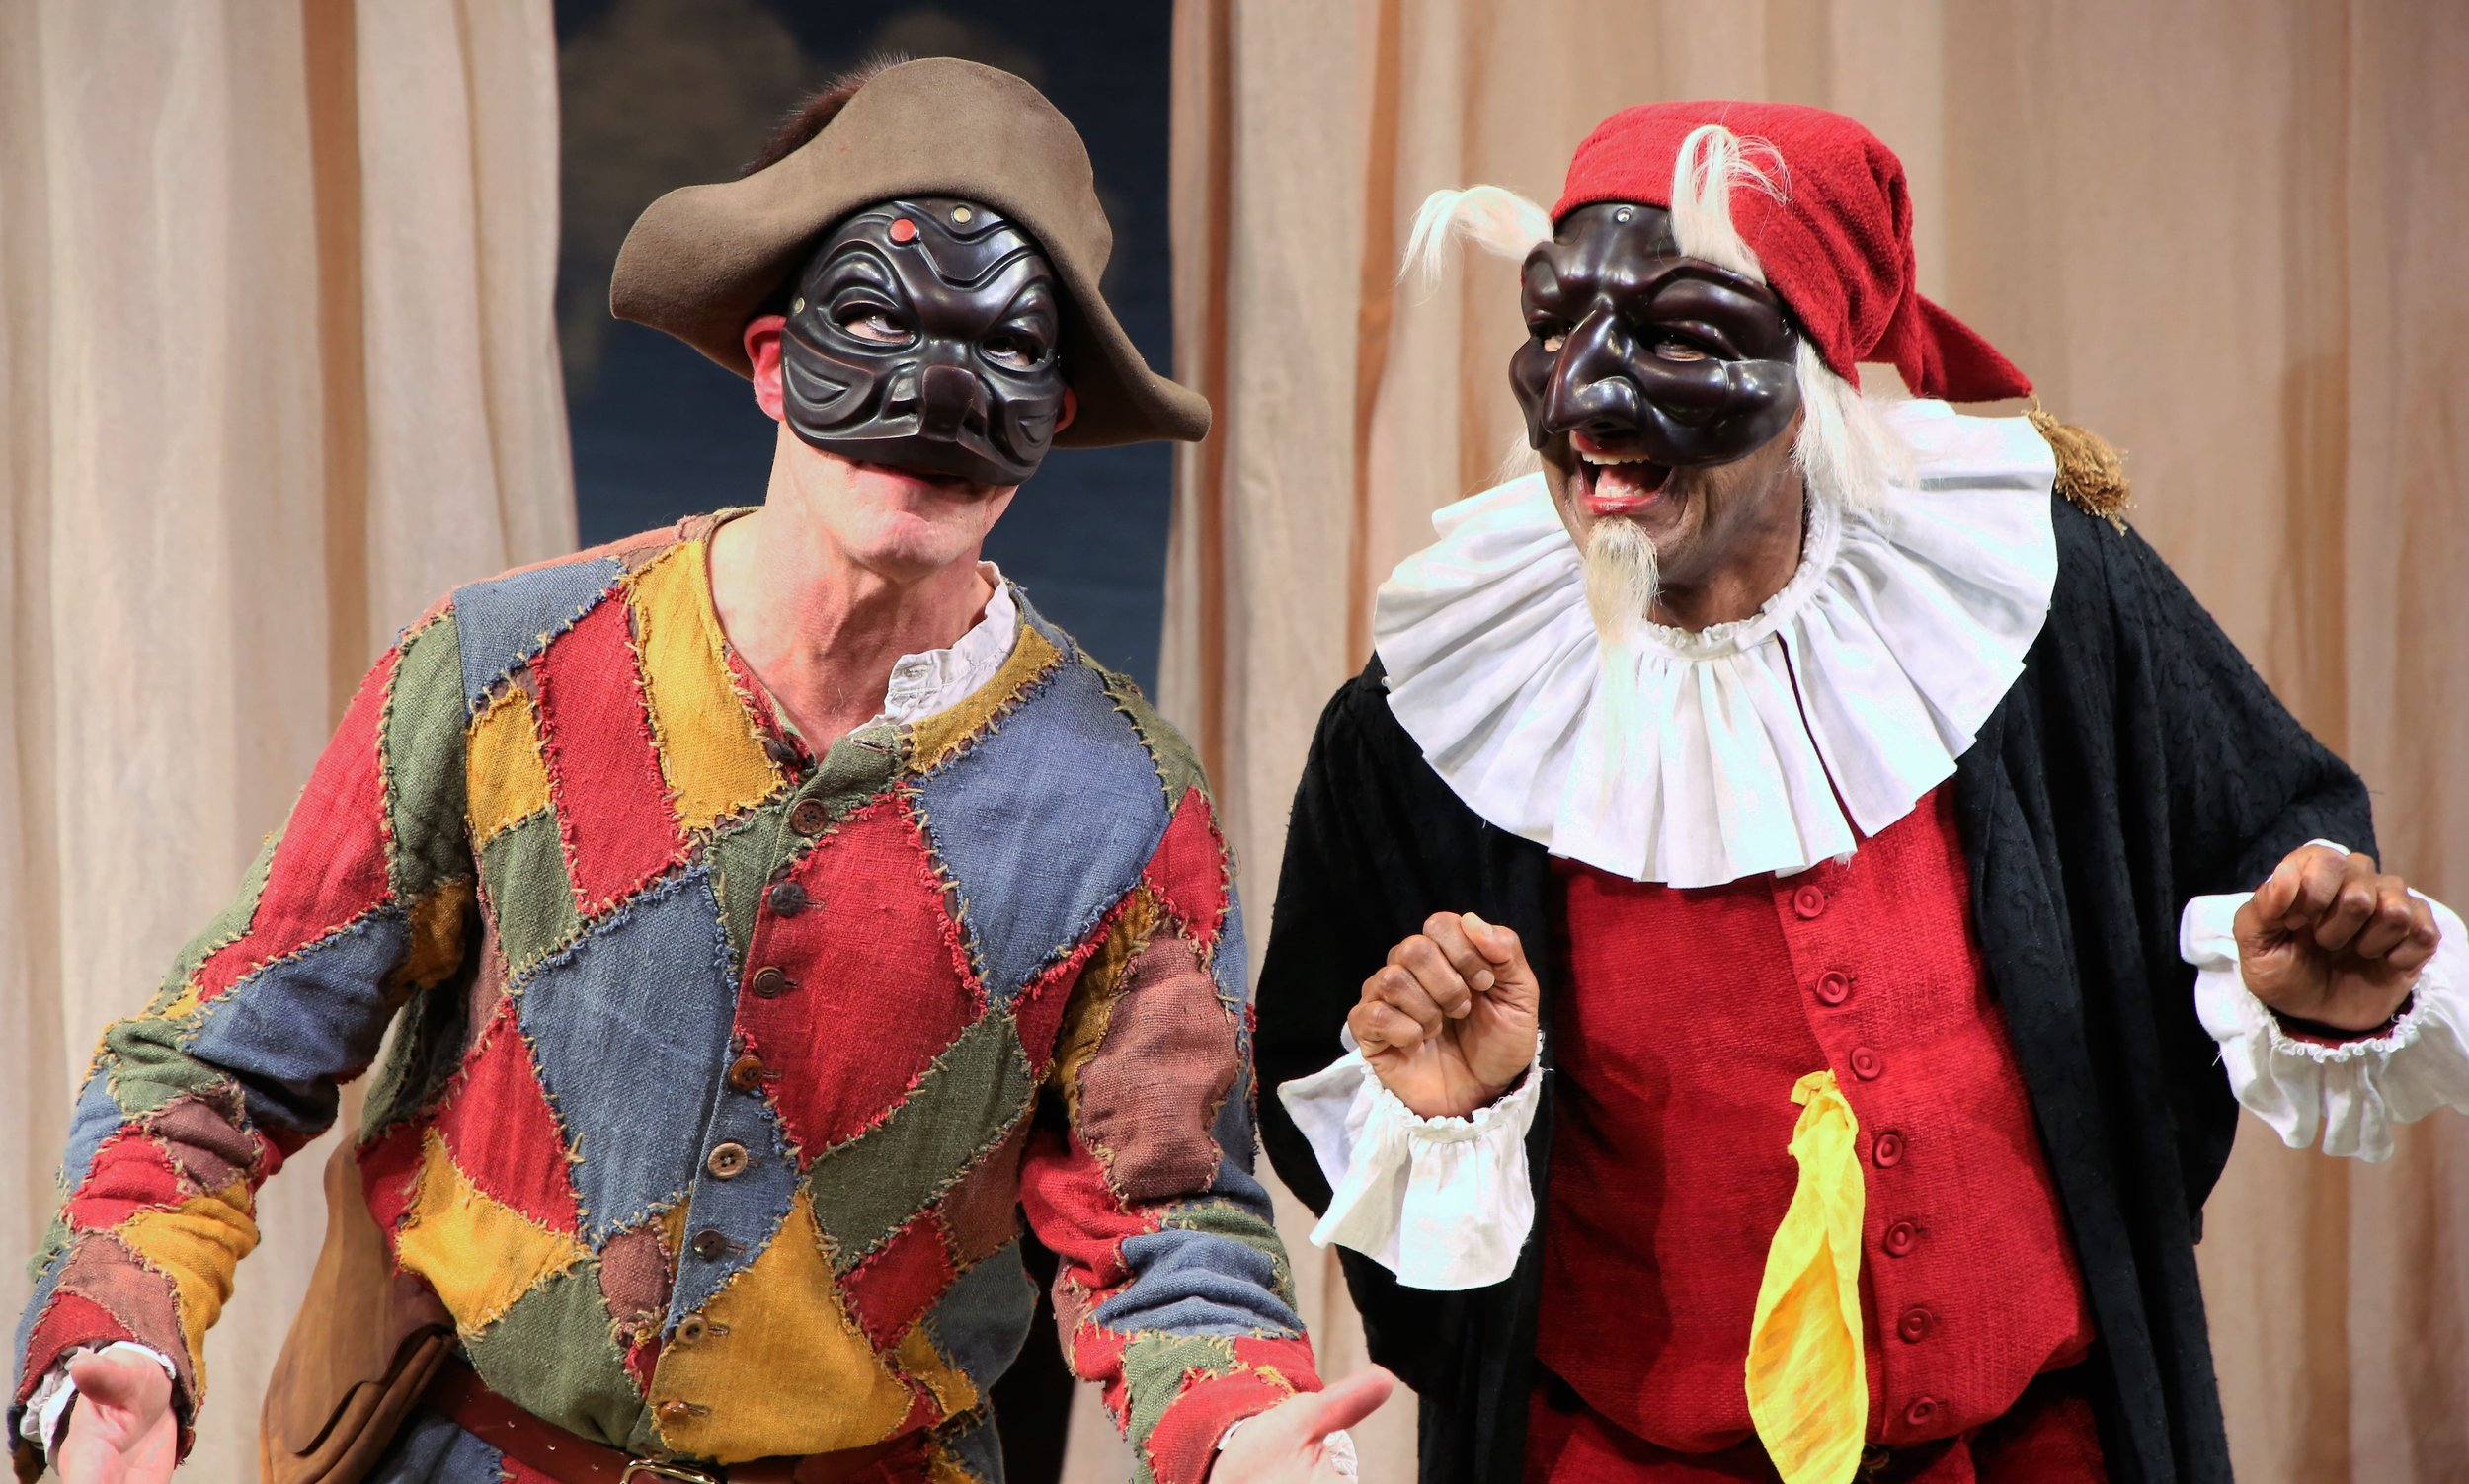 Epp (left) with Allen Gilmore as Pantalone. Photos by Gerry Goodstein.